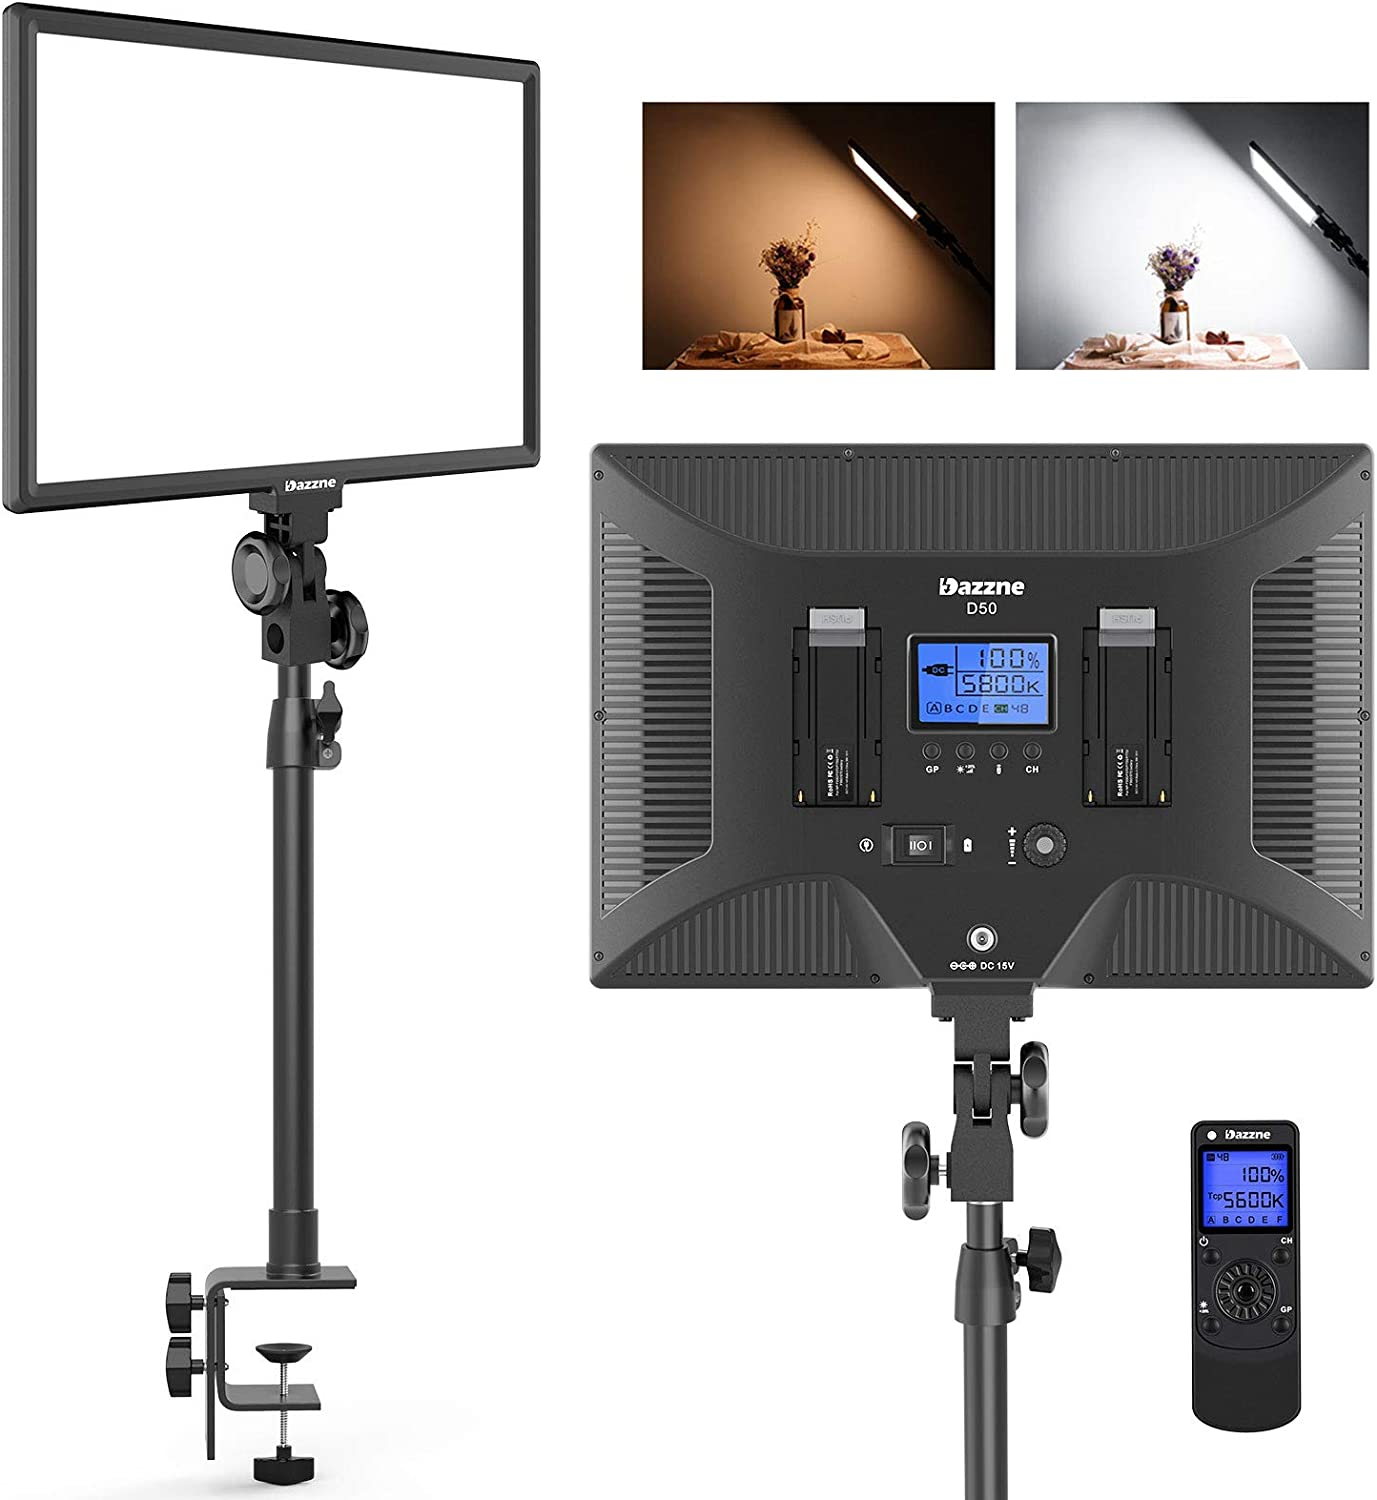 Dazzne D50 Led Video Light With C Table Clamps Video Camera Photo